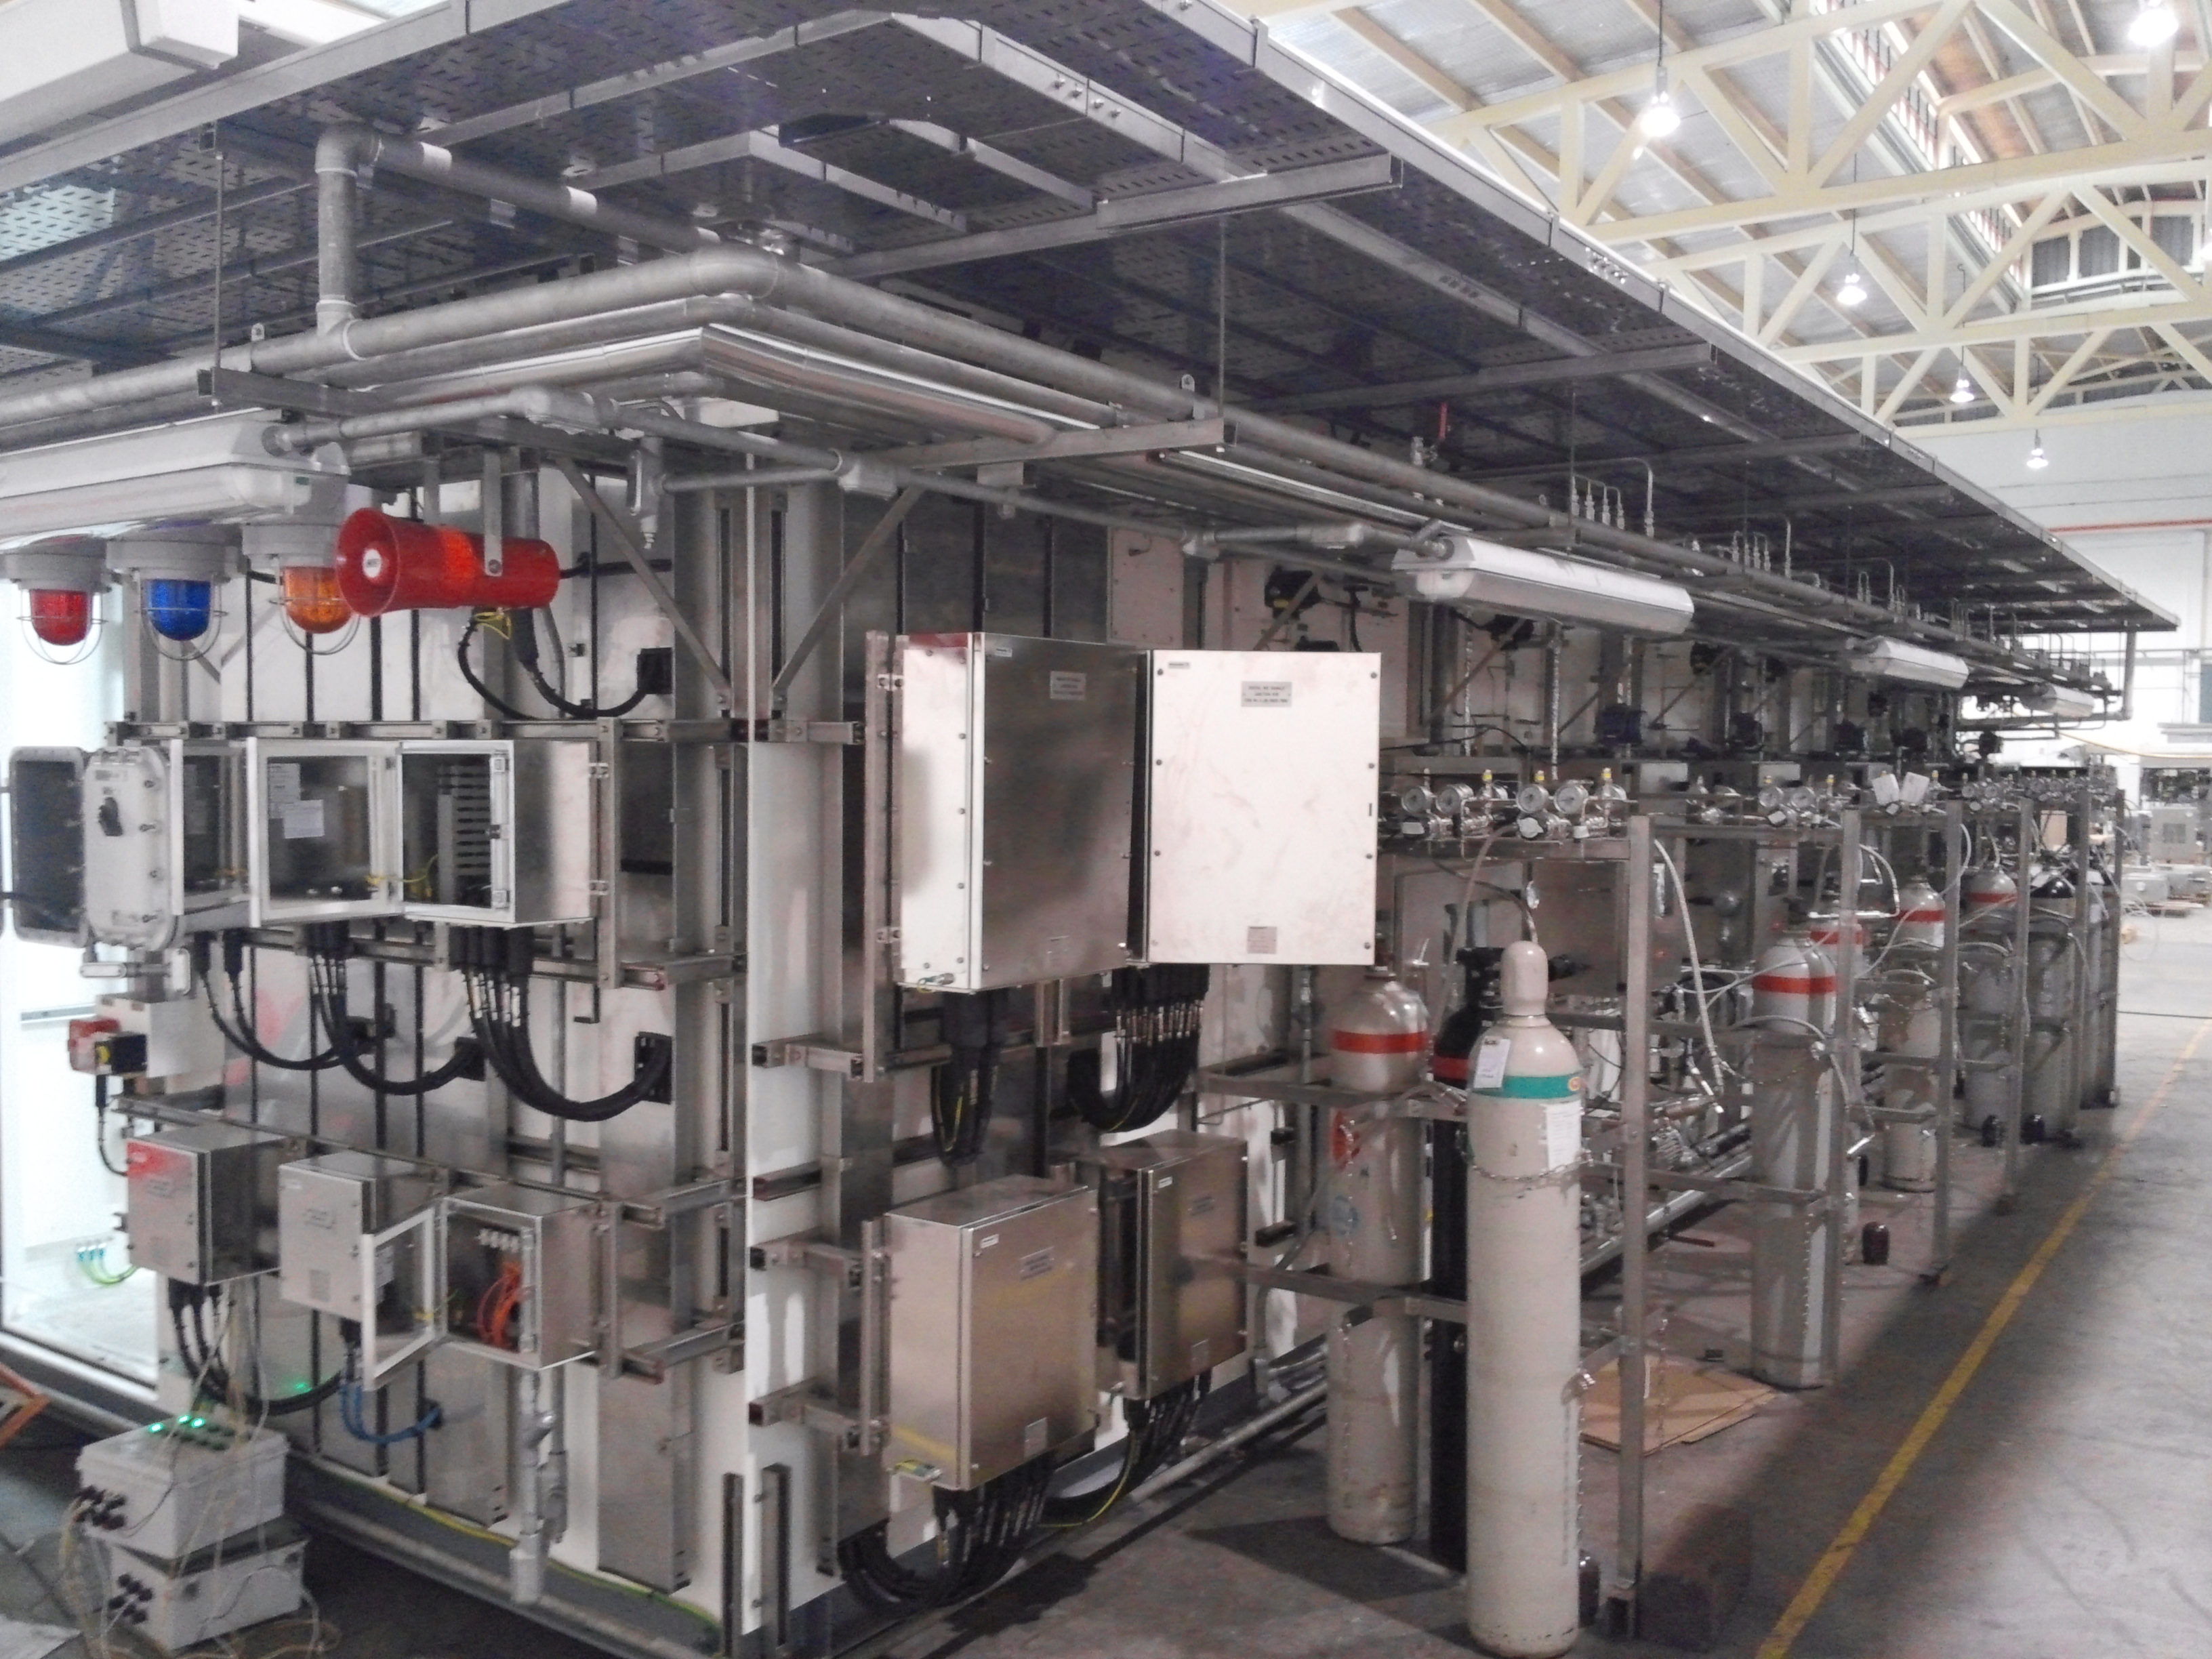 Challenges for Customers:Customers face real challenges in maintaining analyzer systems and automating process quality in their plants to achieve a vigilant system.